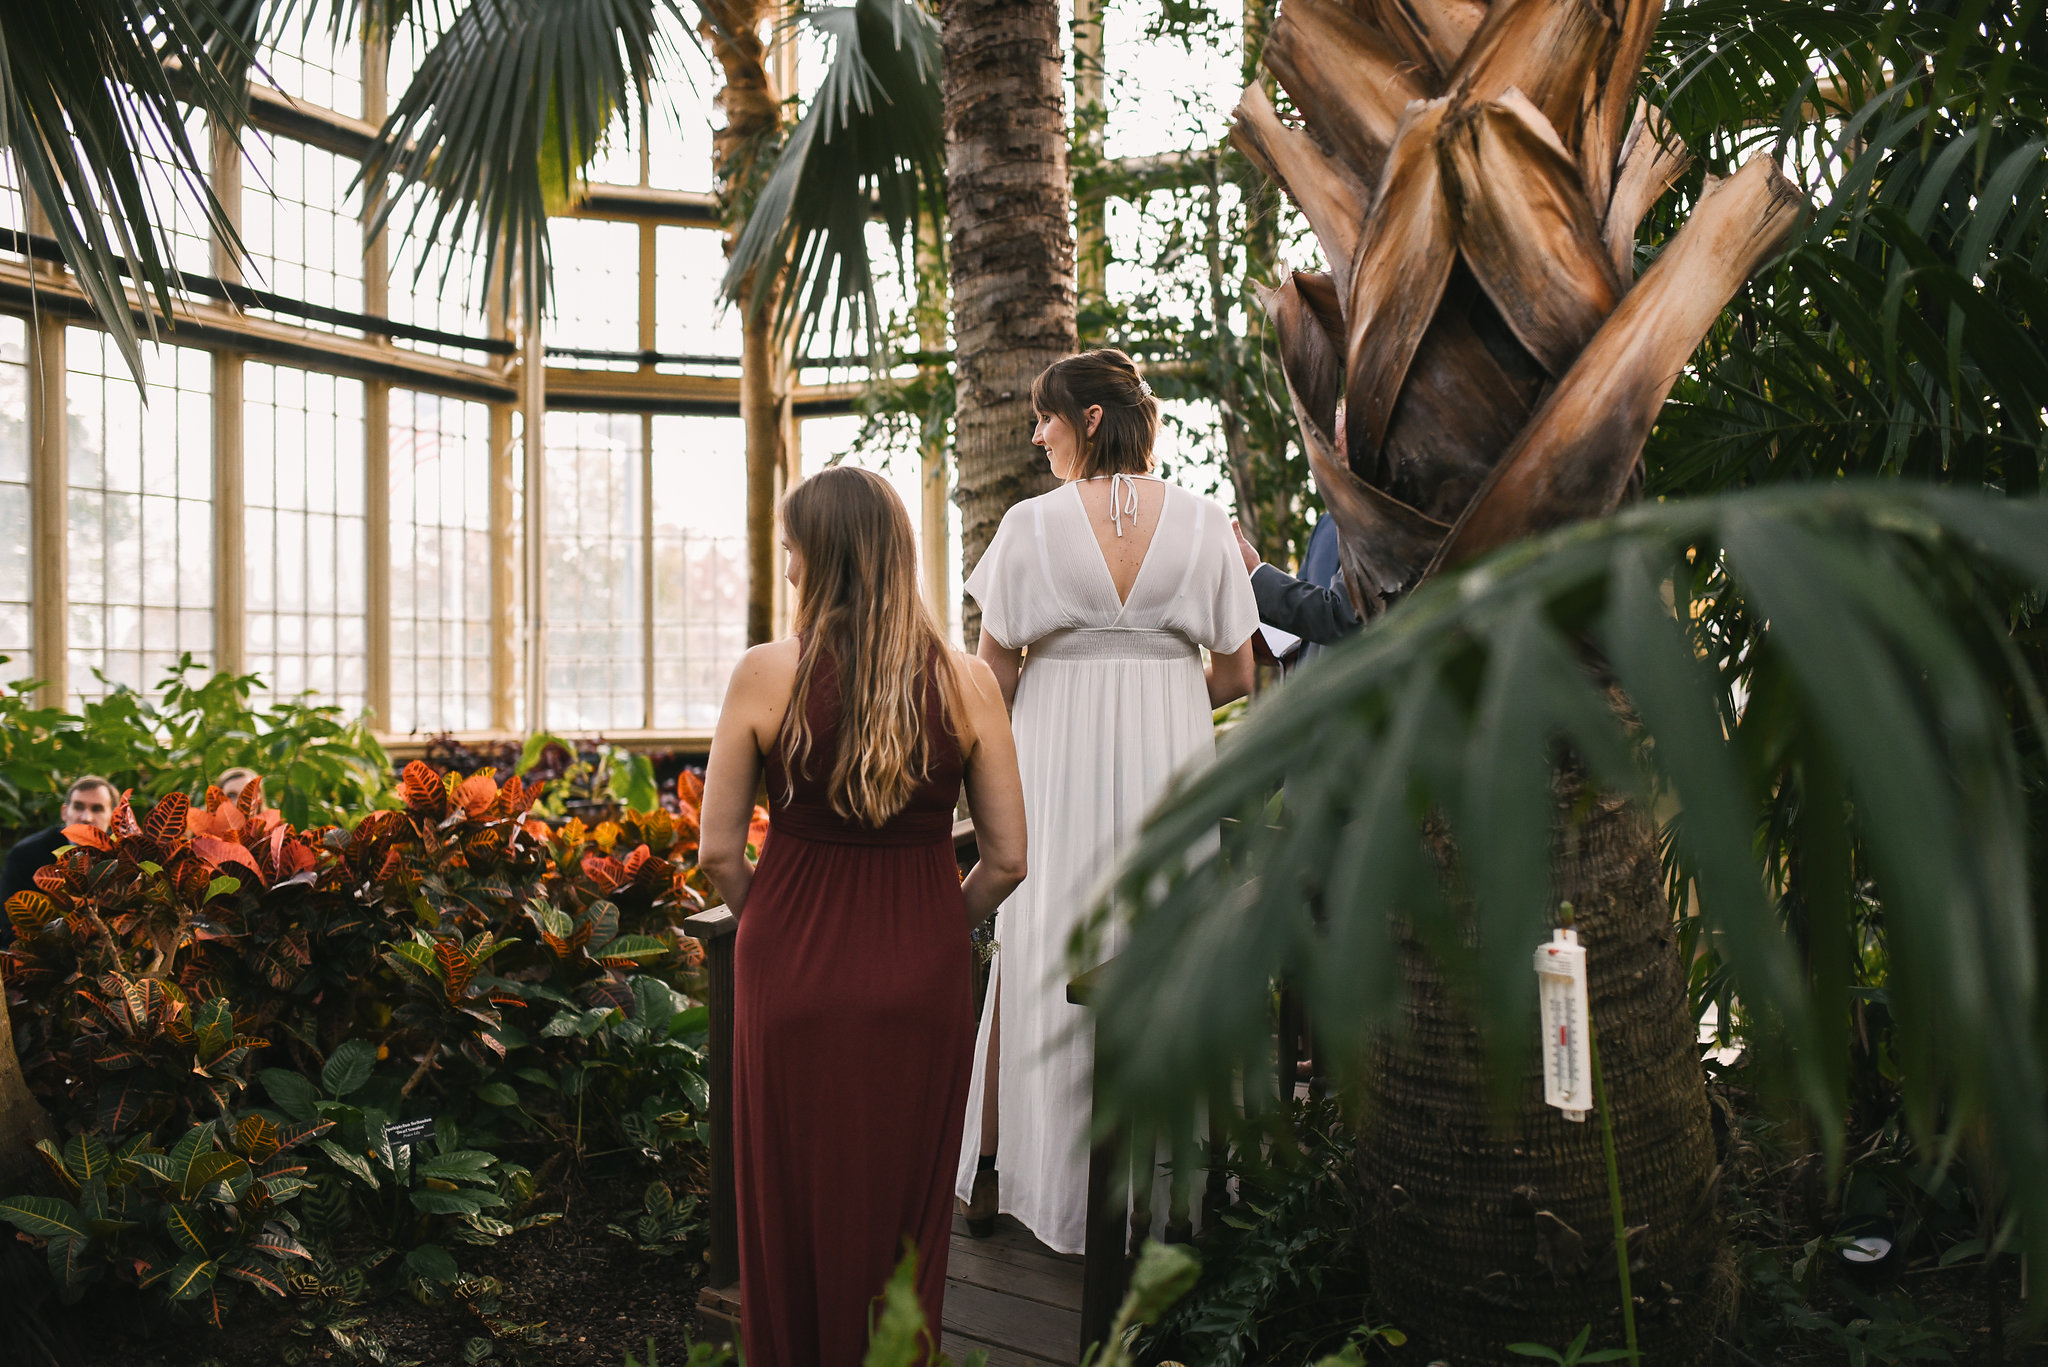 Rawlings Conservatory, Druid Hill Park, Intimate Wedding, Nature, Baltimore Wedding Photographer, Romantic, Classic, Bride and Bridesmaid Standing by Tropical Plants